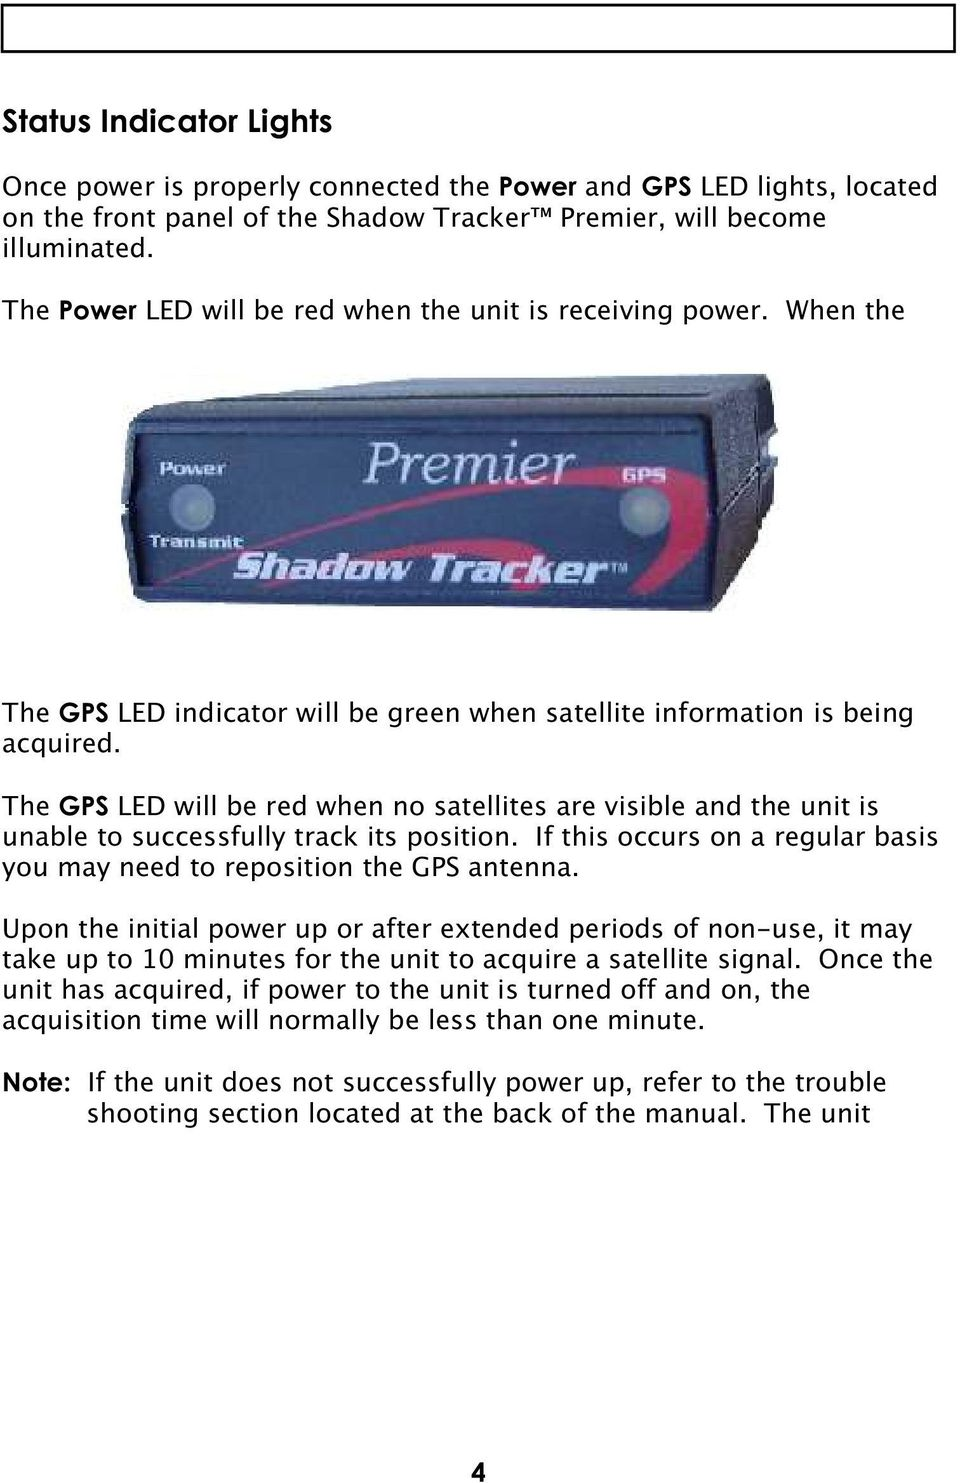 The GPS LED will be red when no satellites are visible and the unit is unable to successfully track its position. If this occurs on a regular basis you may need to reposition the GPS antenna.